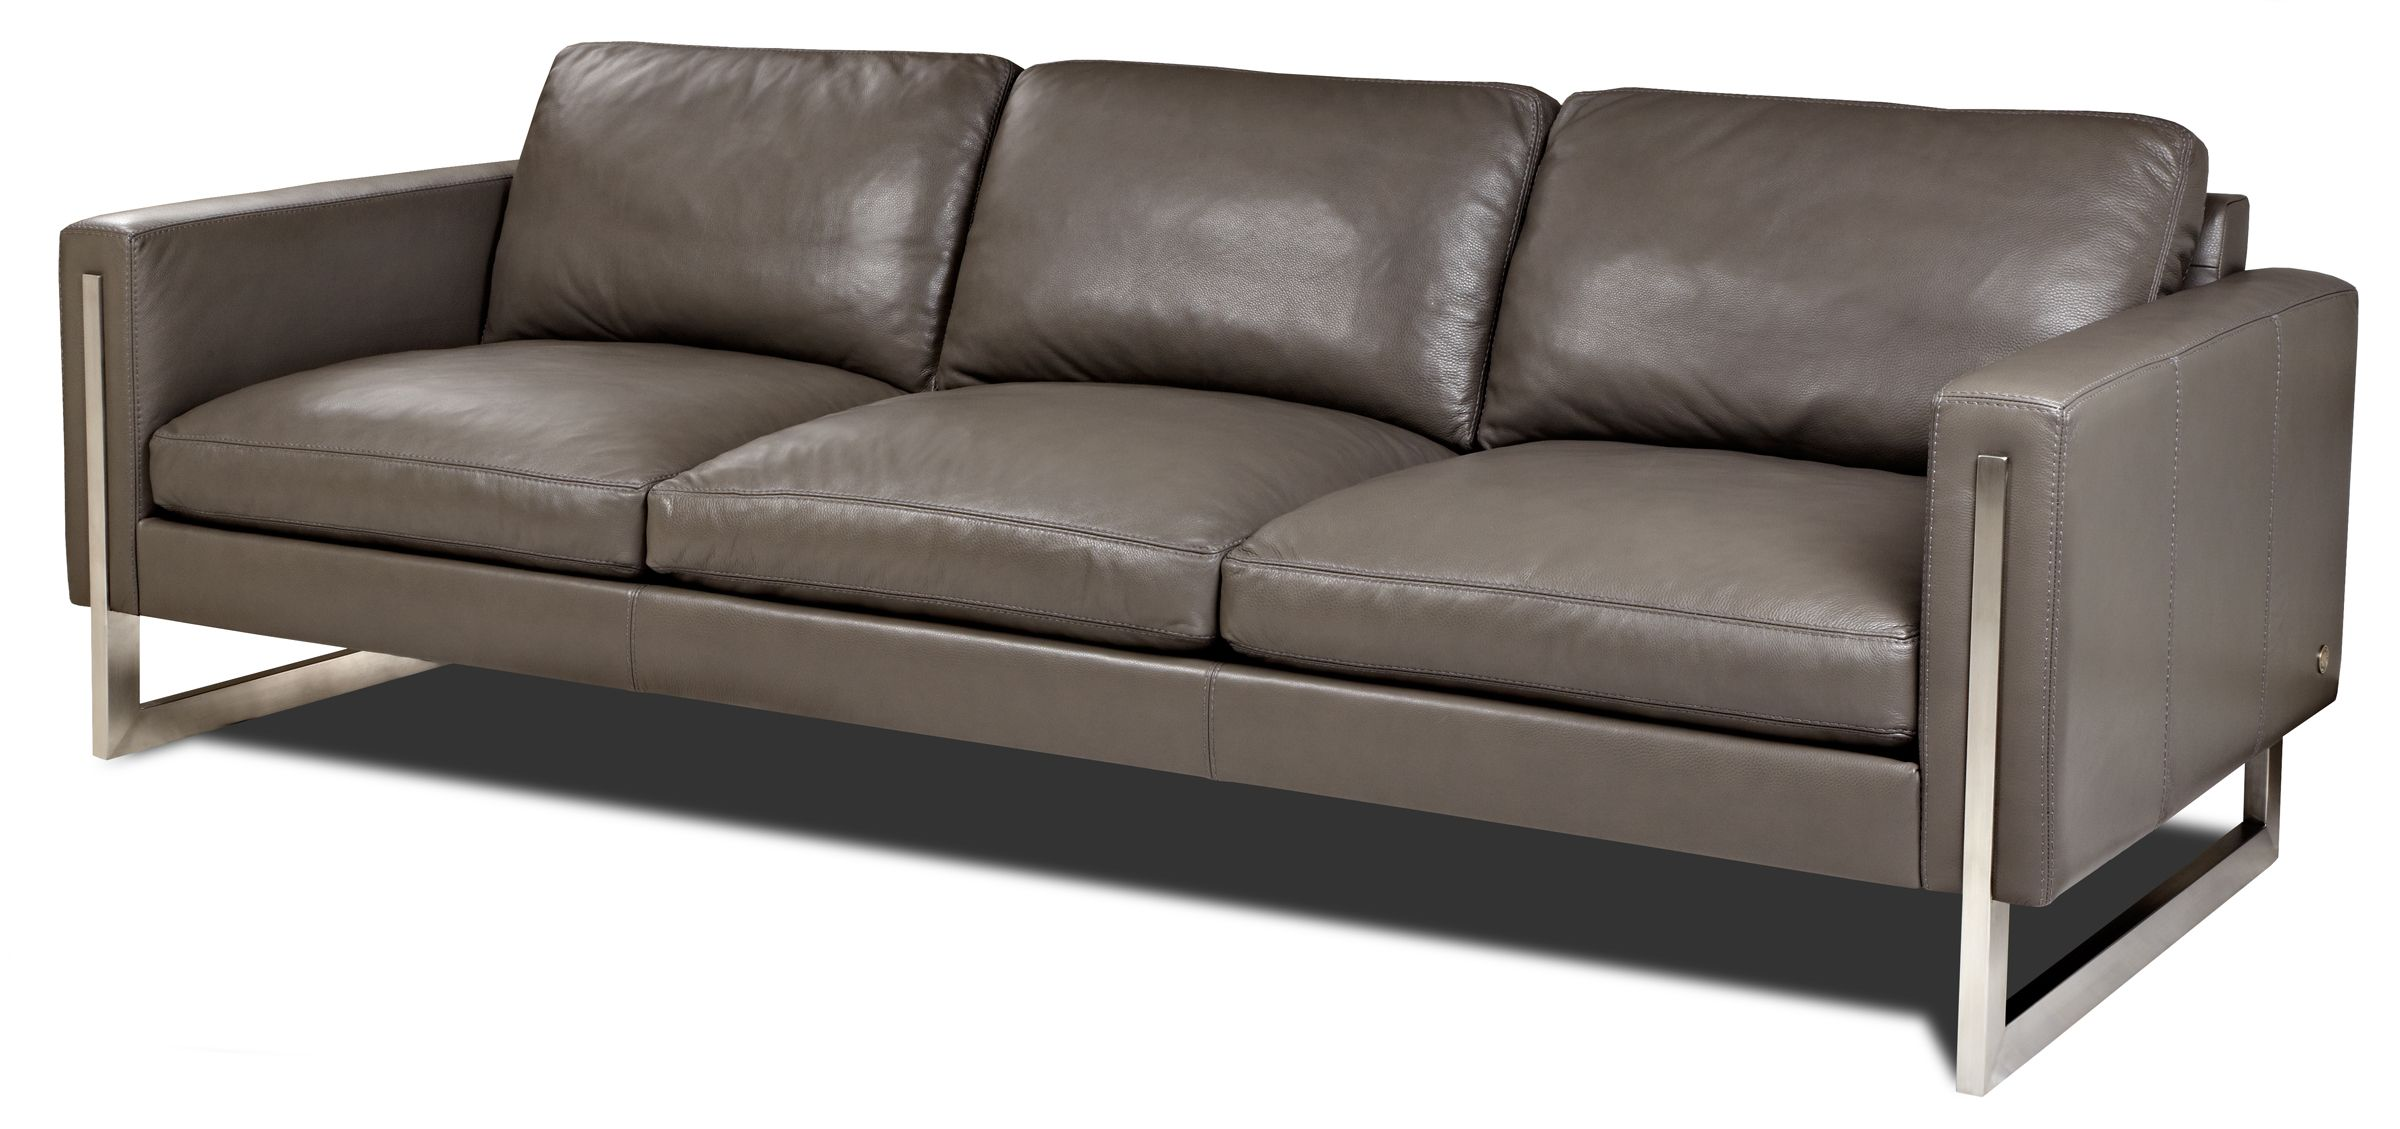 American Leather Savino Sofa With Smooth Seat And Back Cushions